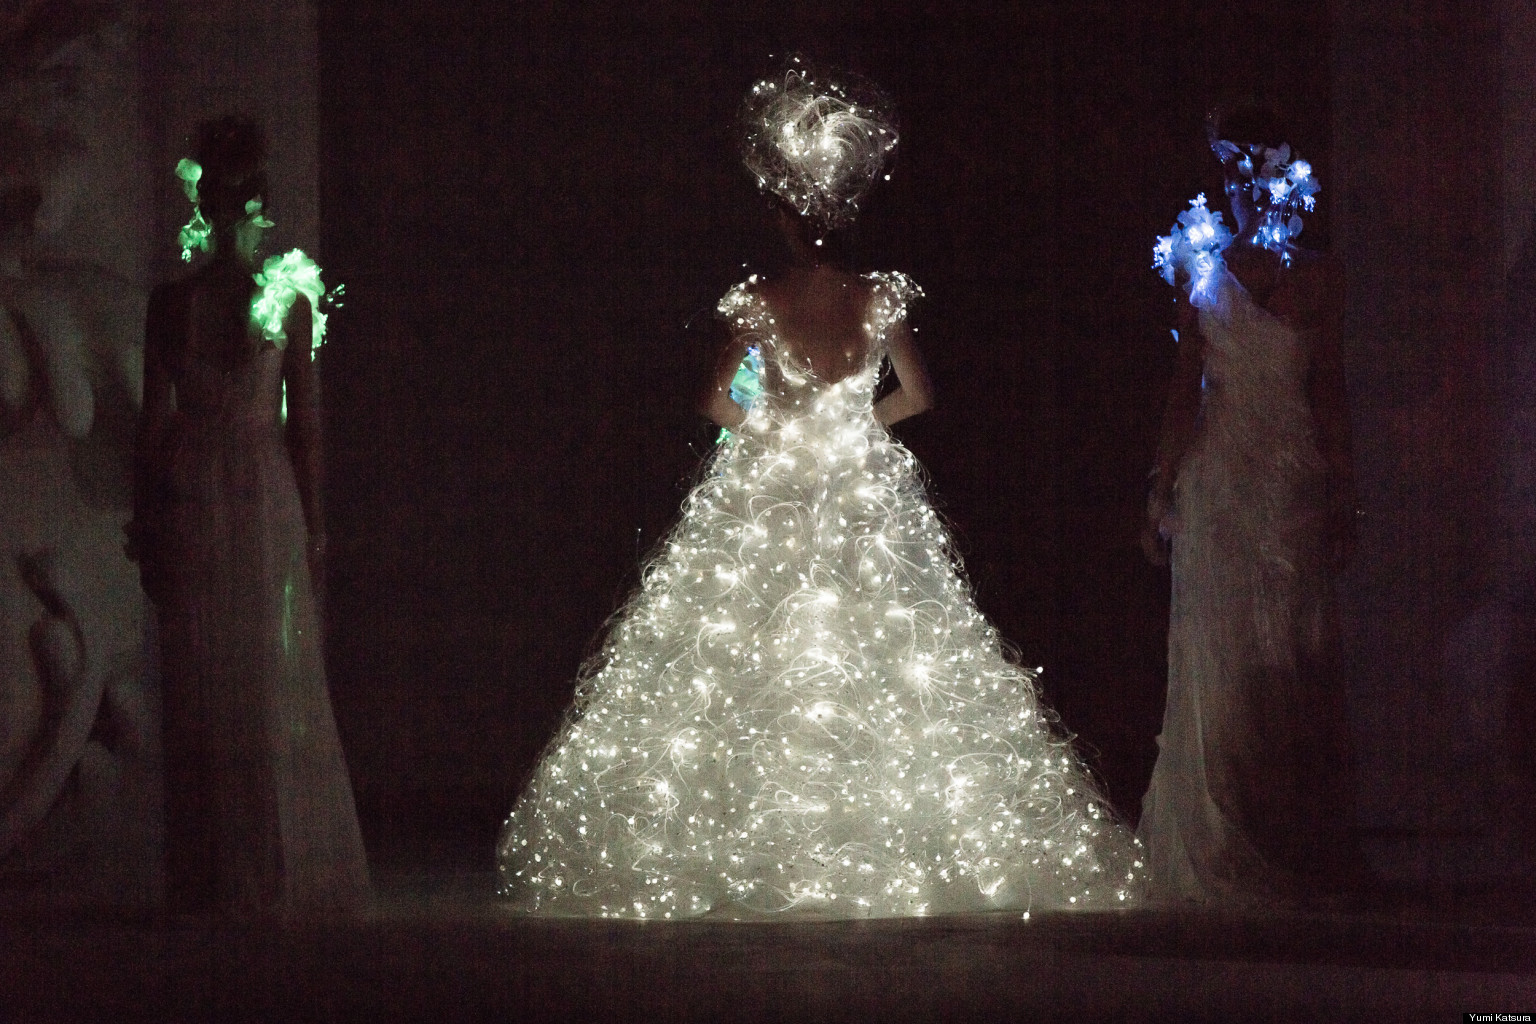 Wedding Dress With Lights Yumi Katsura Debuts Glowing